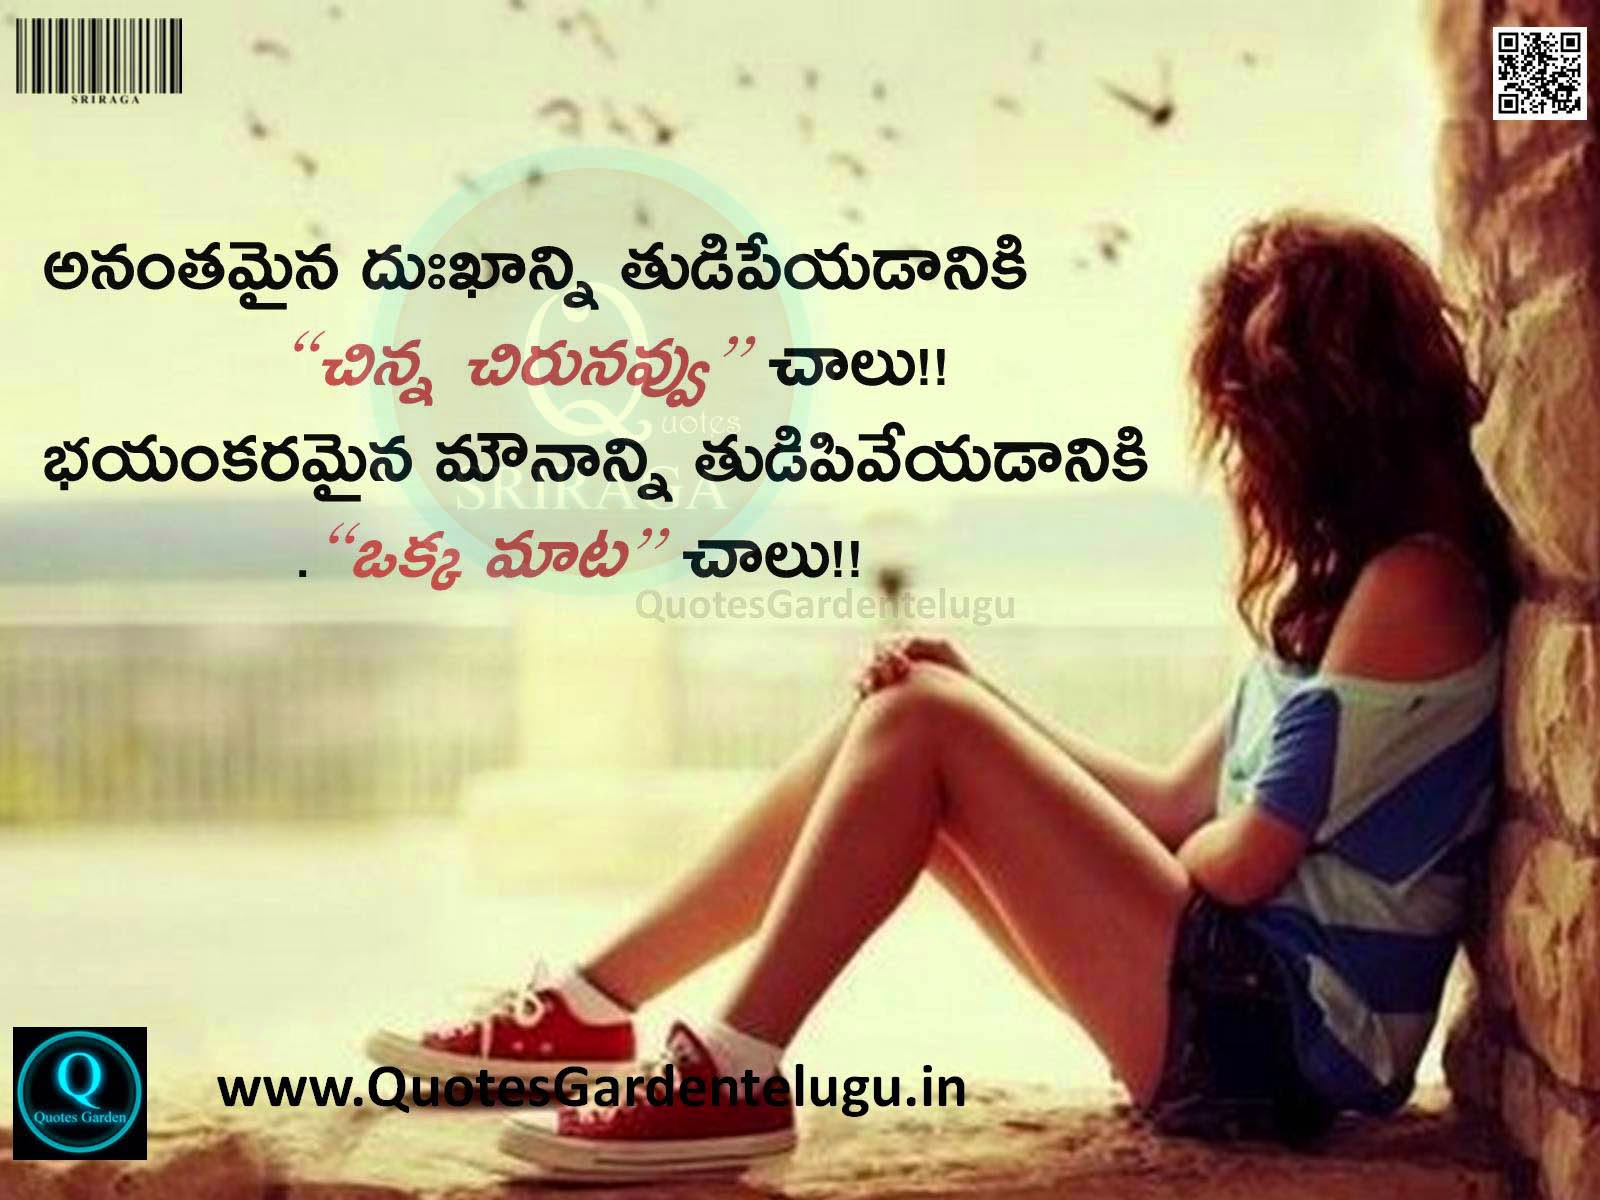 Top Telugu Quotes Top Telugu images Top Telugu wallpapers Top Telugu Inspiraitonal Quotes